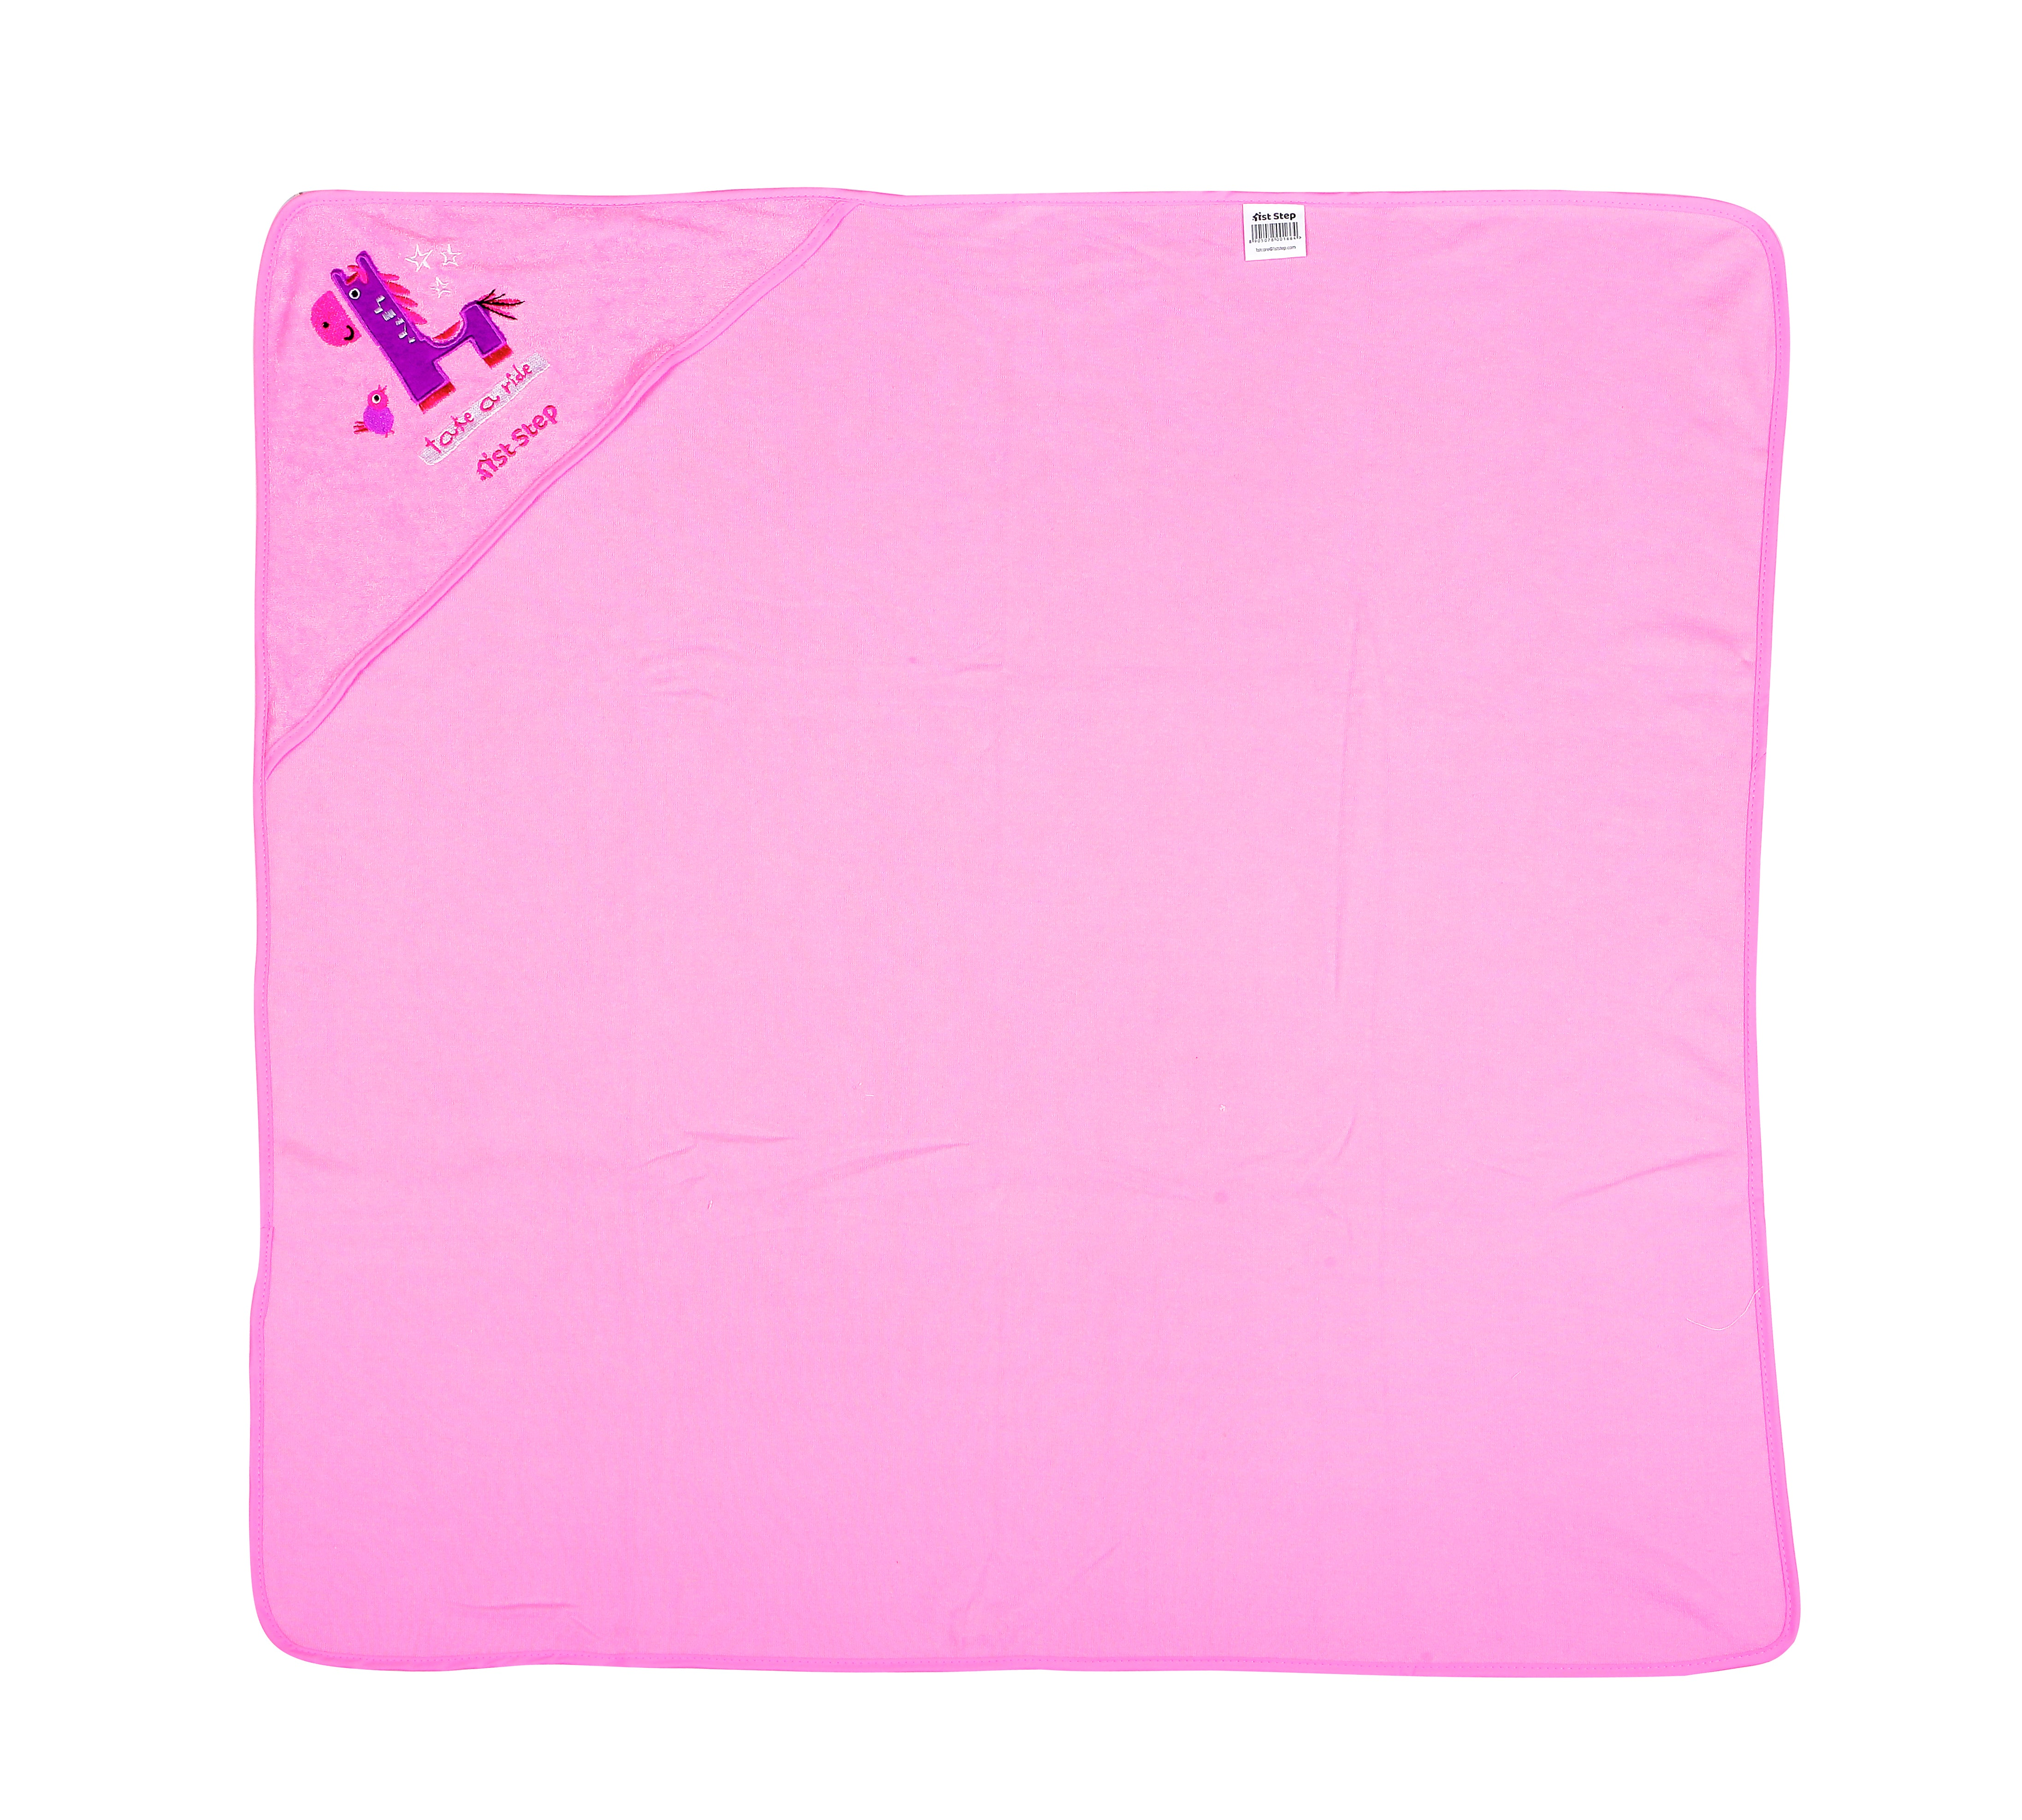 1st Step Terry Cotton Soft, Absorbant, Breathable, Skin Friendly, Printed, Hooded Baby Bath Towel/Bath Robe/Wrapper (Pink)